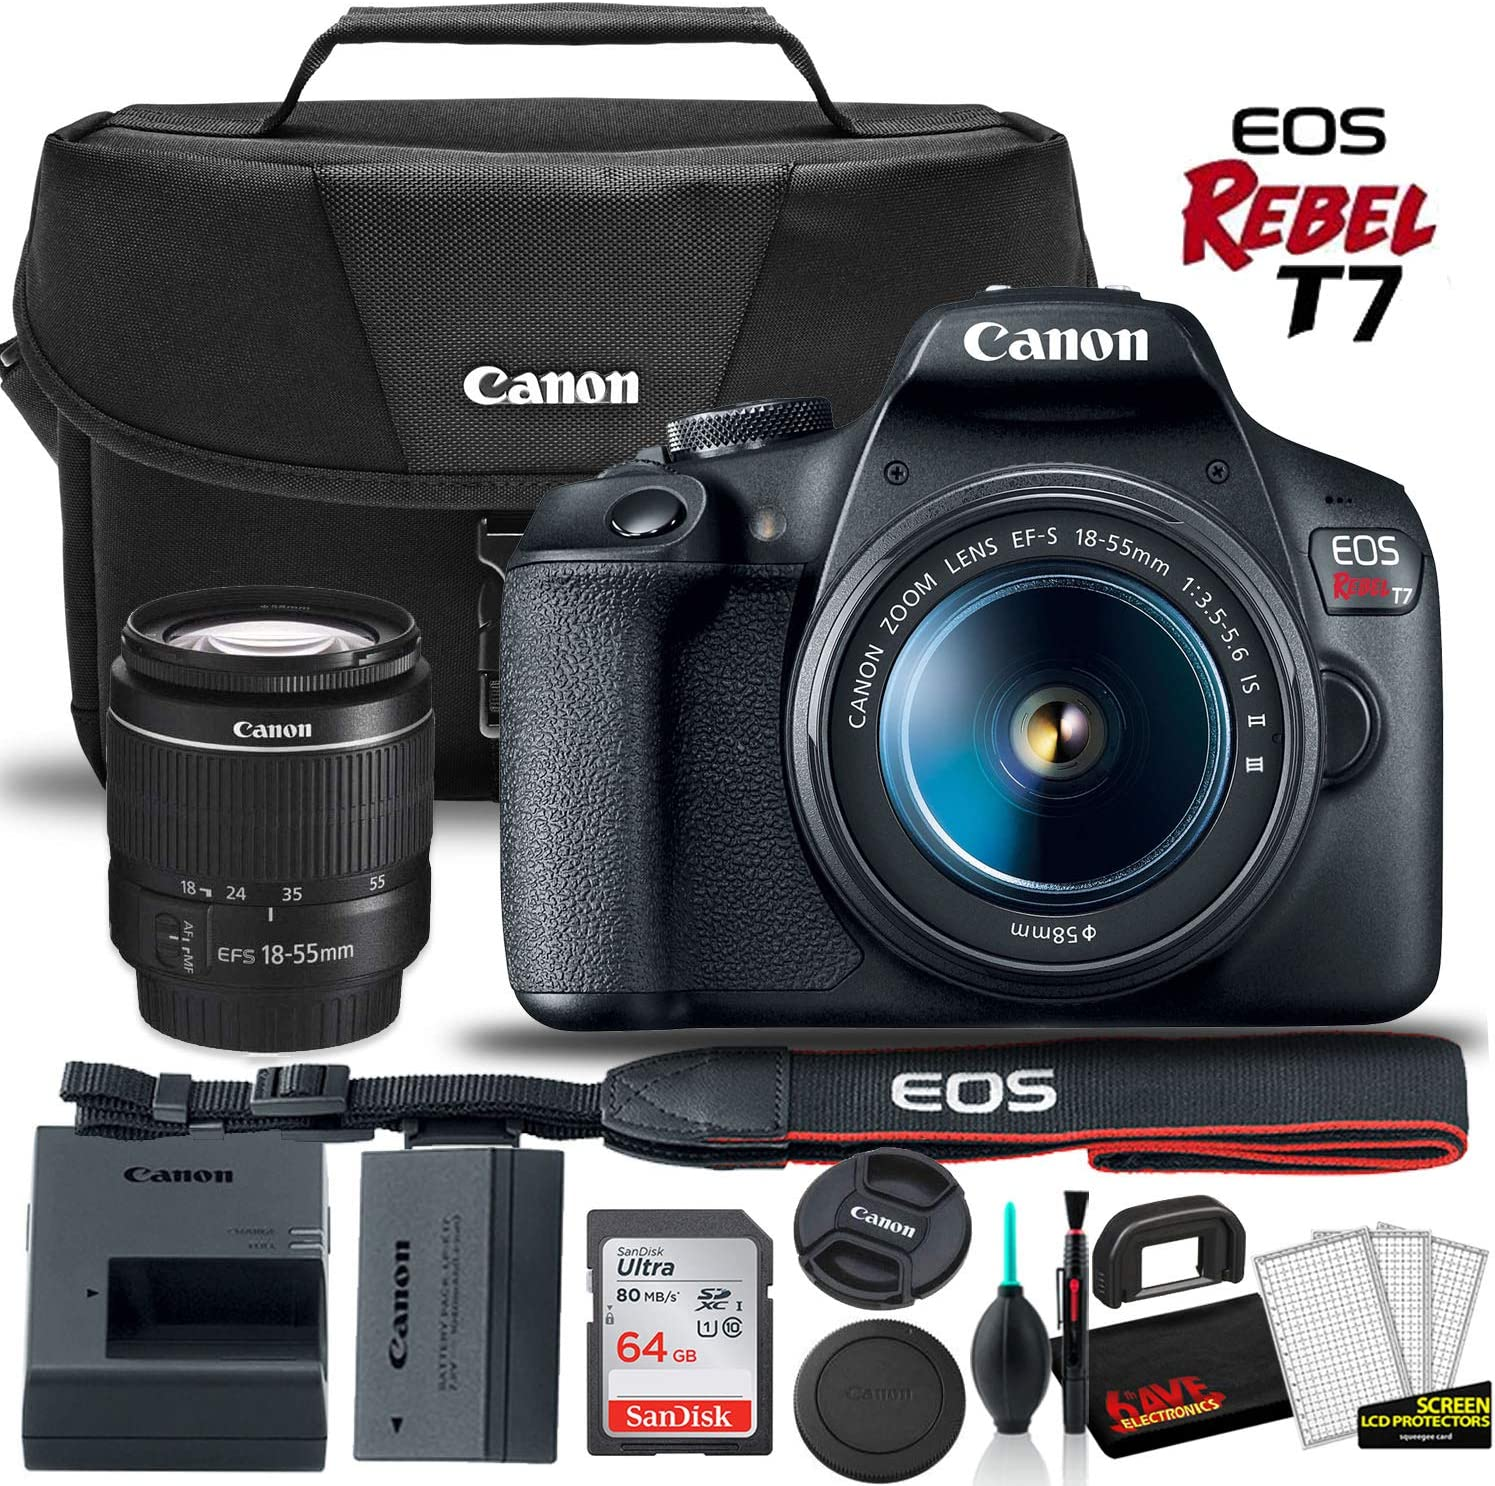 Canon EOS Rebel T7 DSLR Camera with 18-55mm Lens Starter Bundle + Includes: Canon EOS Bag + Sandisk Ultra 64GB Card + Clean and Care Kit + More